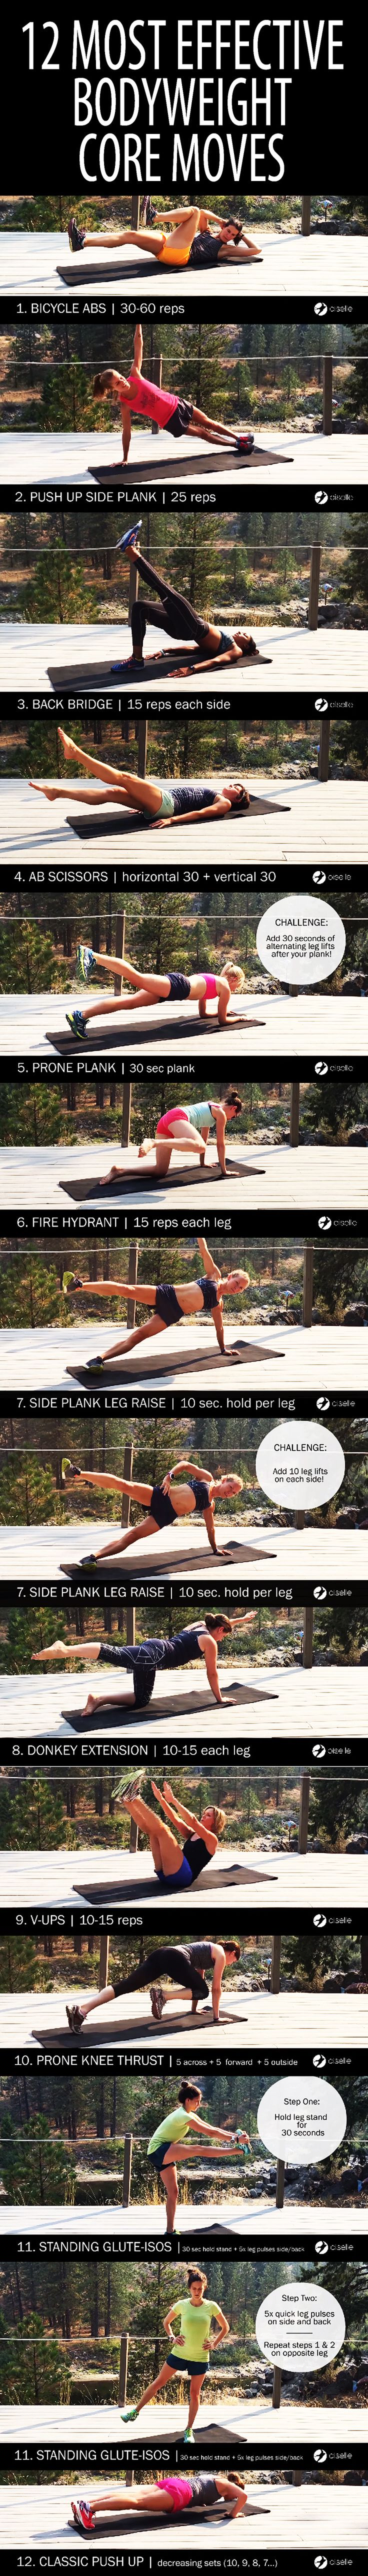 12 most effective bodyweight core moves.